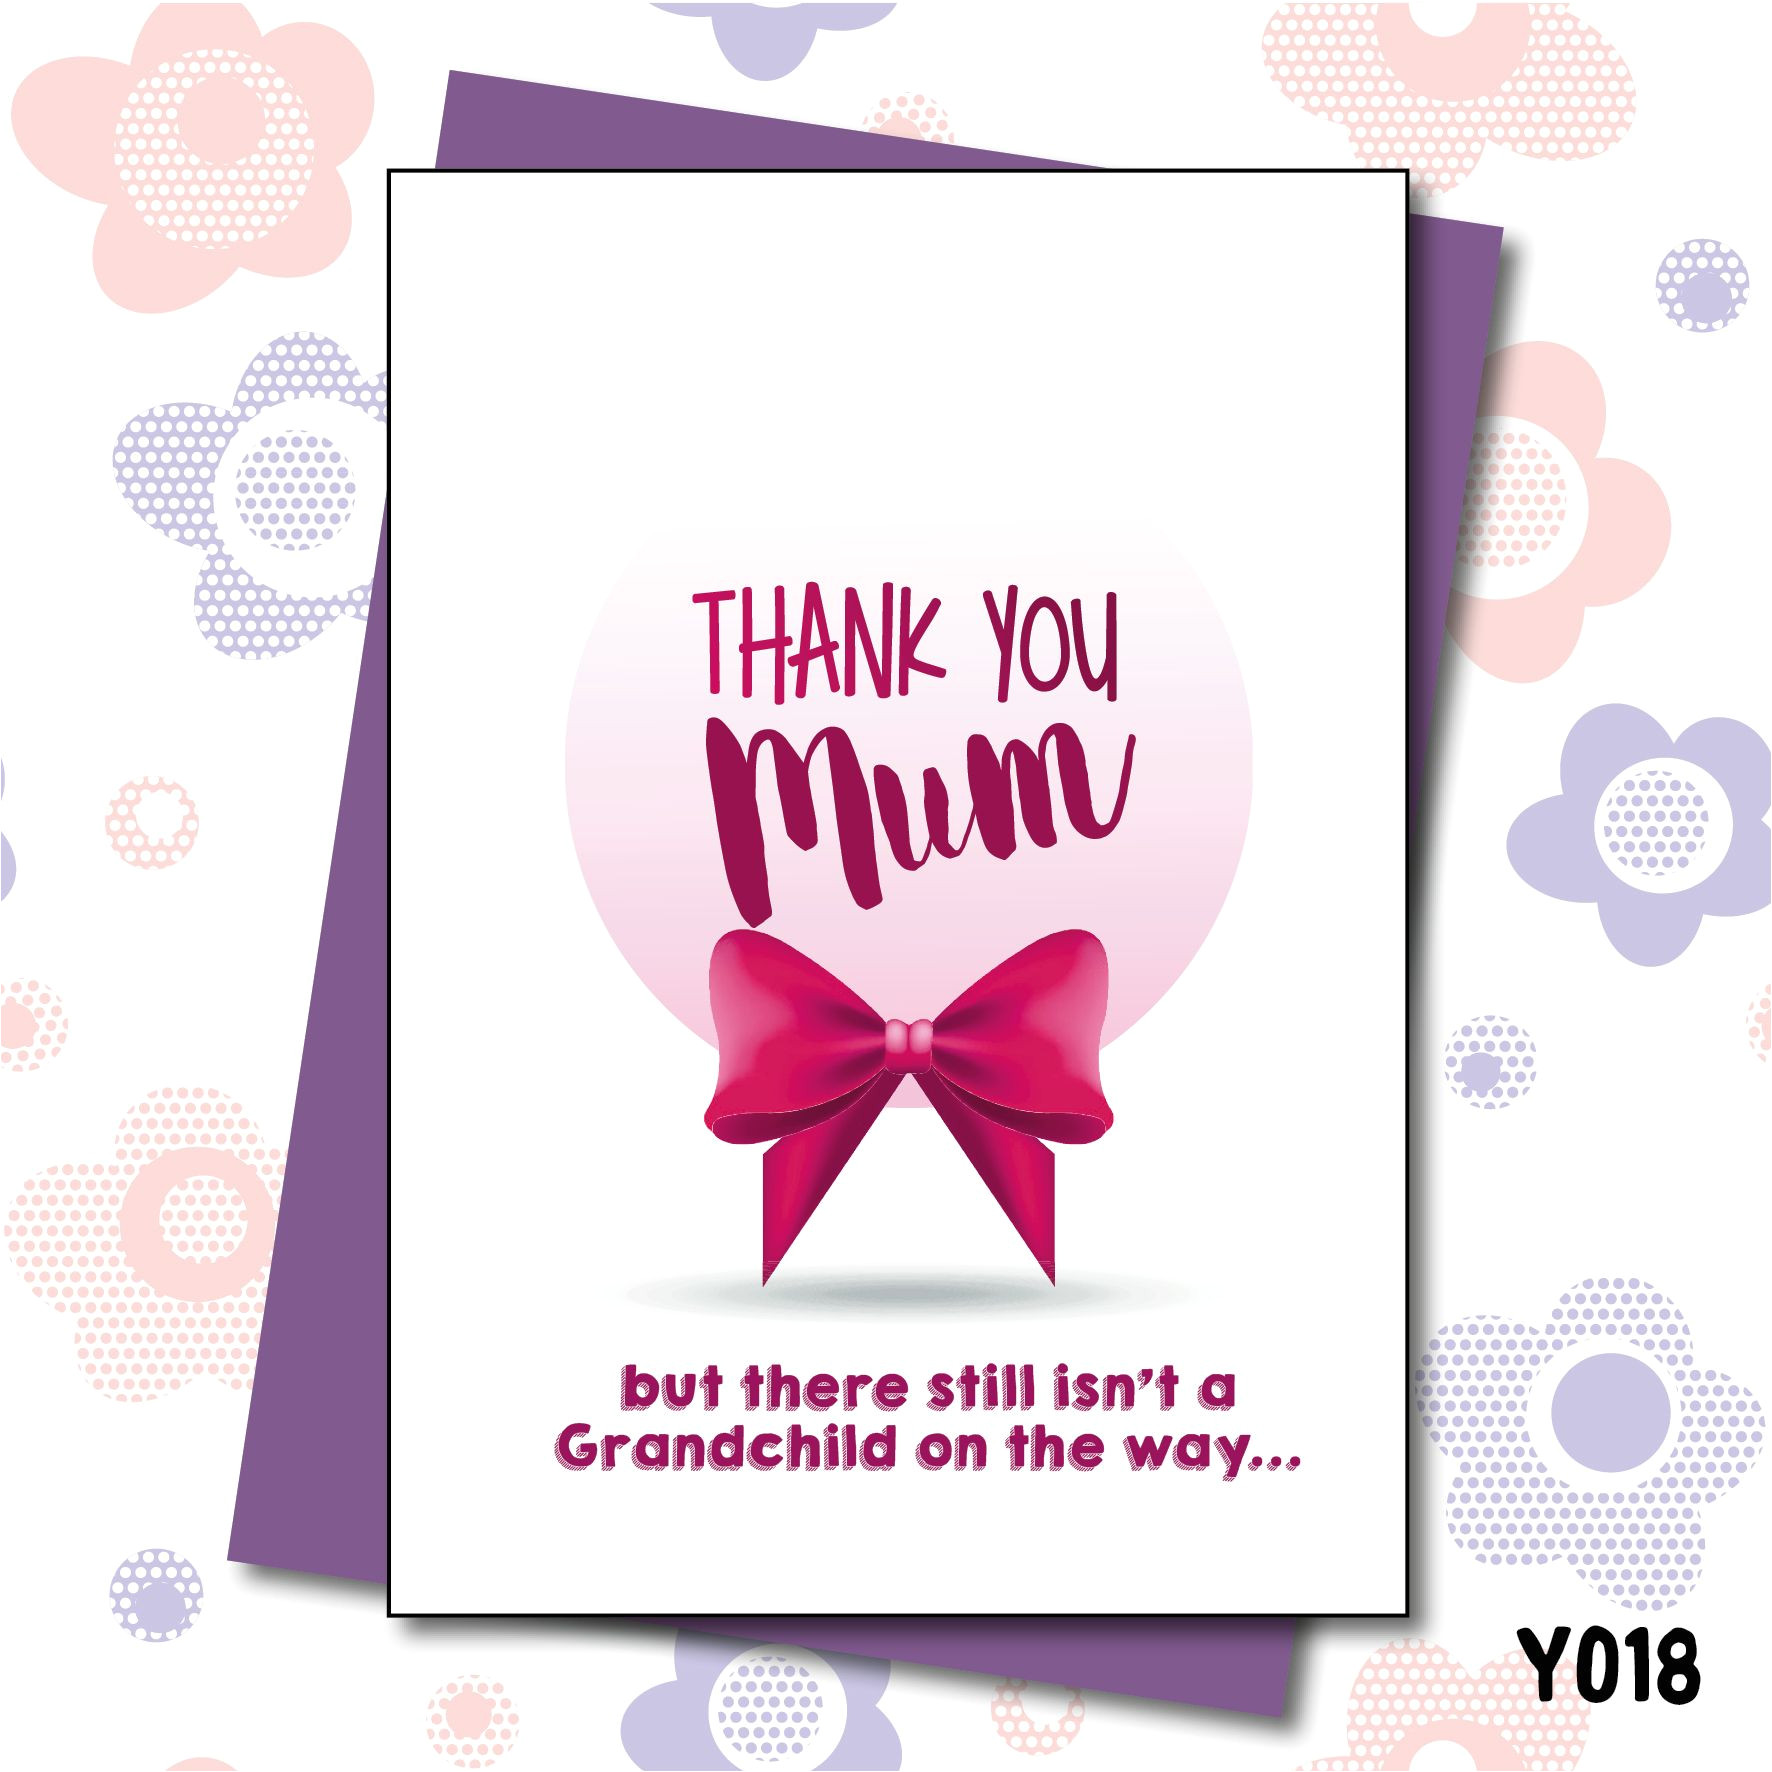 Thank You Card for Your Grandparents Pin On Humour